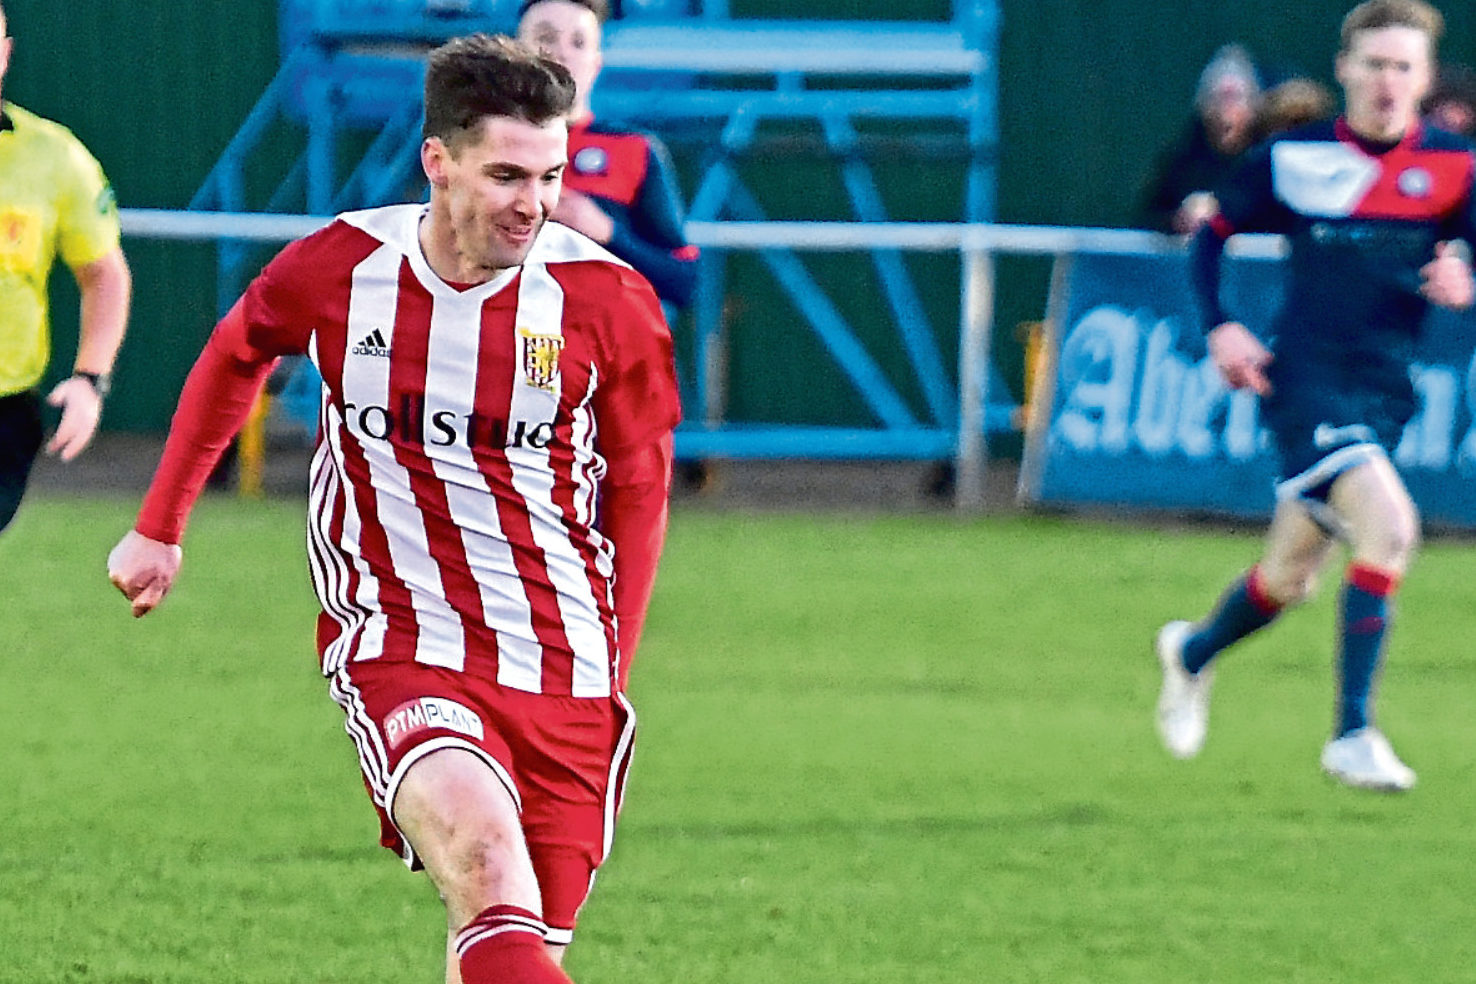 Formartine's Graeme Rodger.  Picture by Chris Sumner